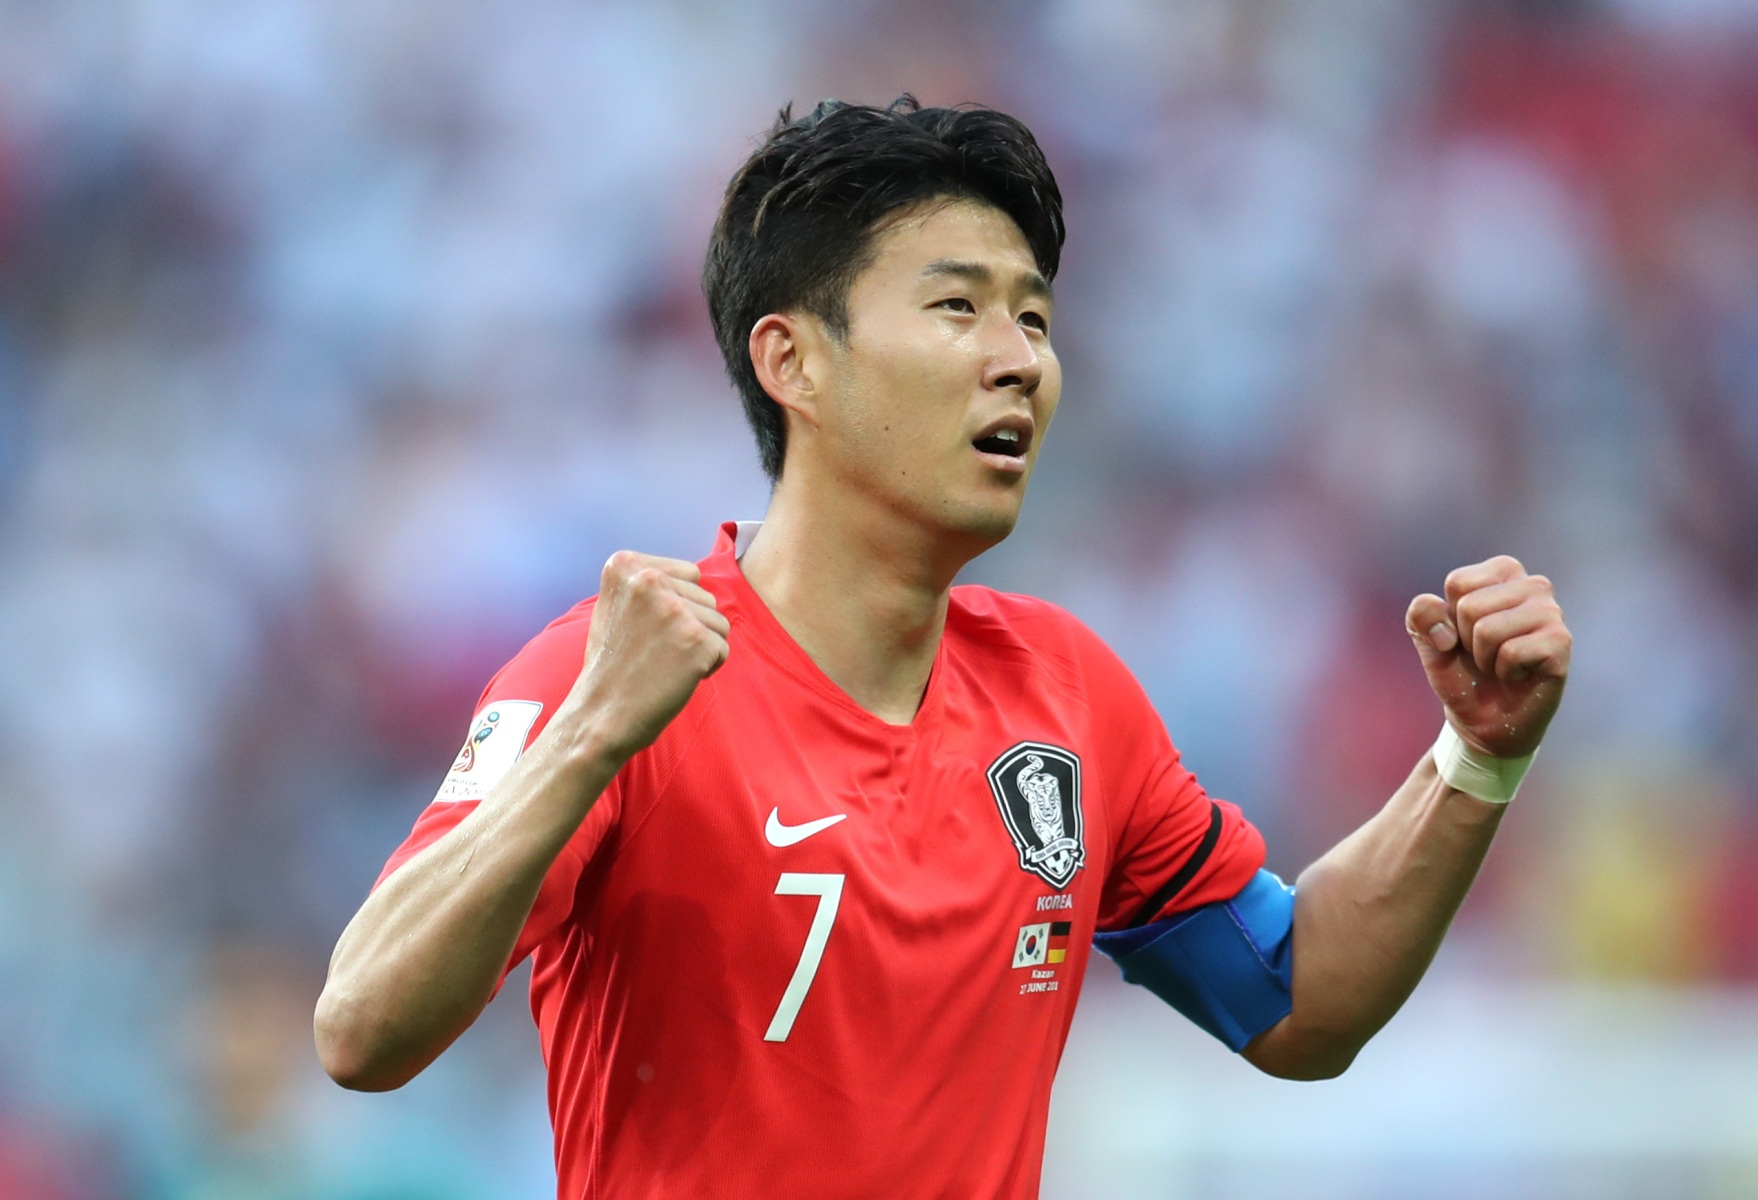 Son Heung-min of Korea Republic celebrates following the 2018 FIFA World Cup Russia group F match between Korea Republic and Germany at Kazan Arena on June 27, 2018 in Kazan, Russia.  (Catherine Ivill/Getty Images)